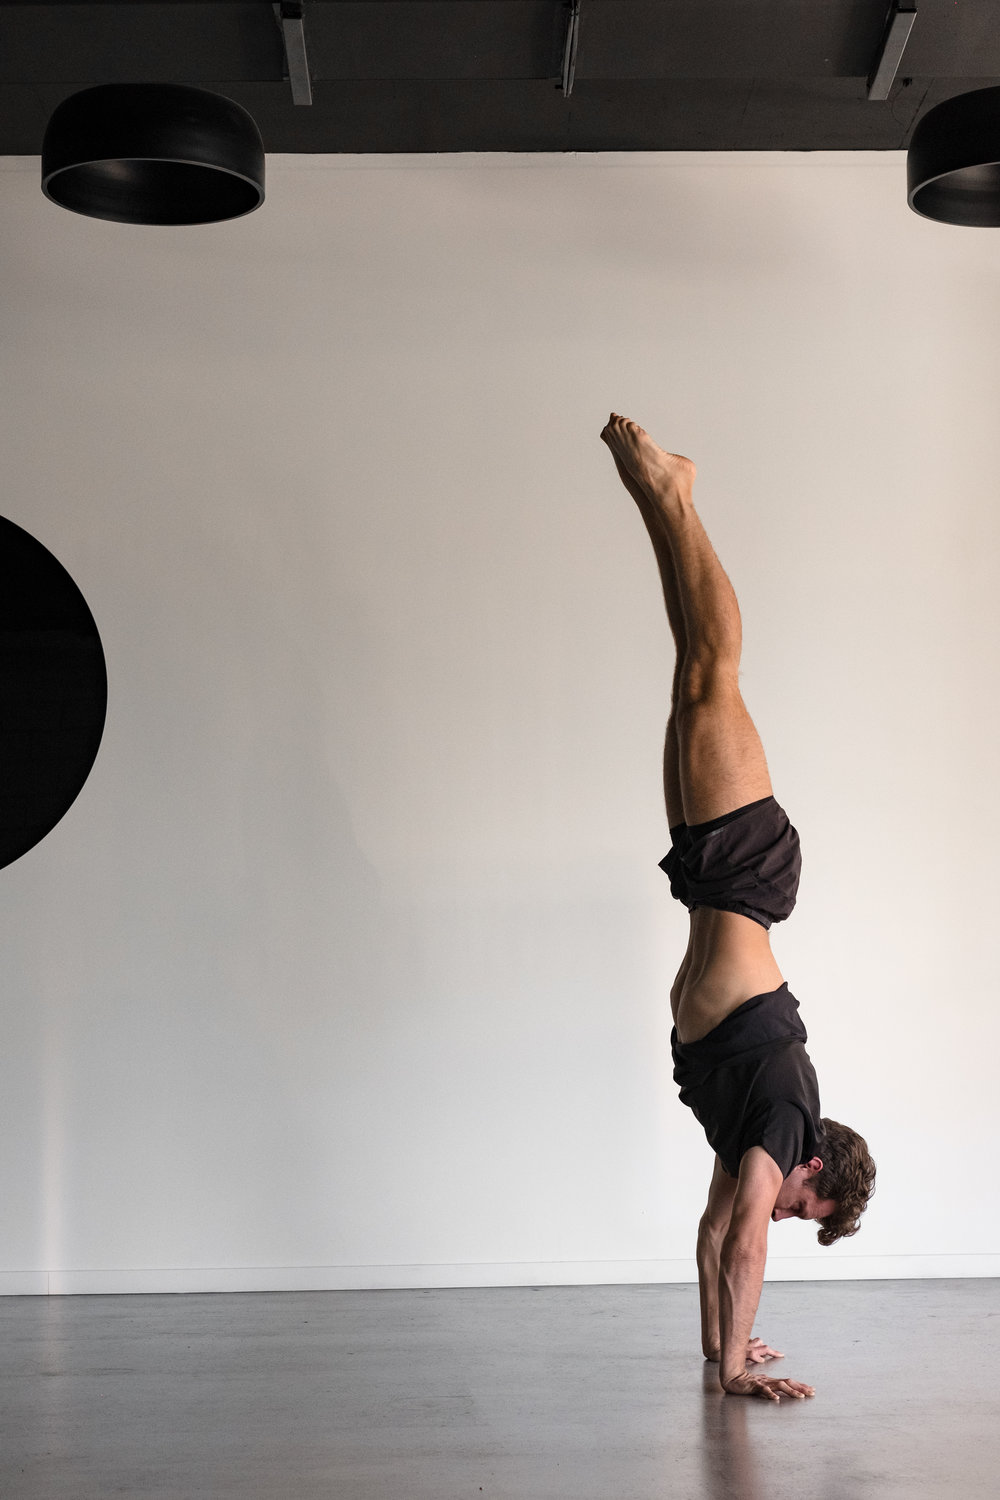 Handstand_Preparation_Training (30 of 38).jpg